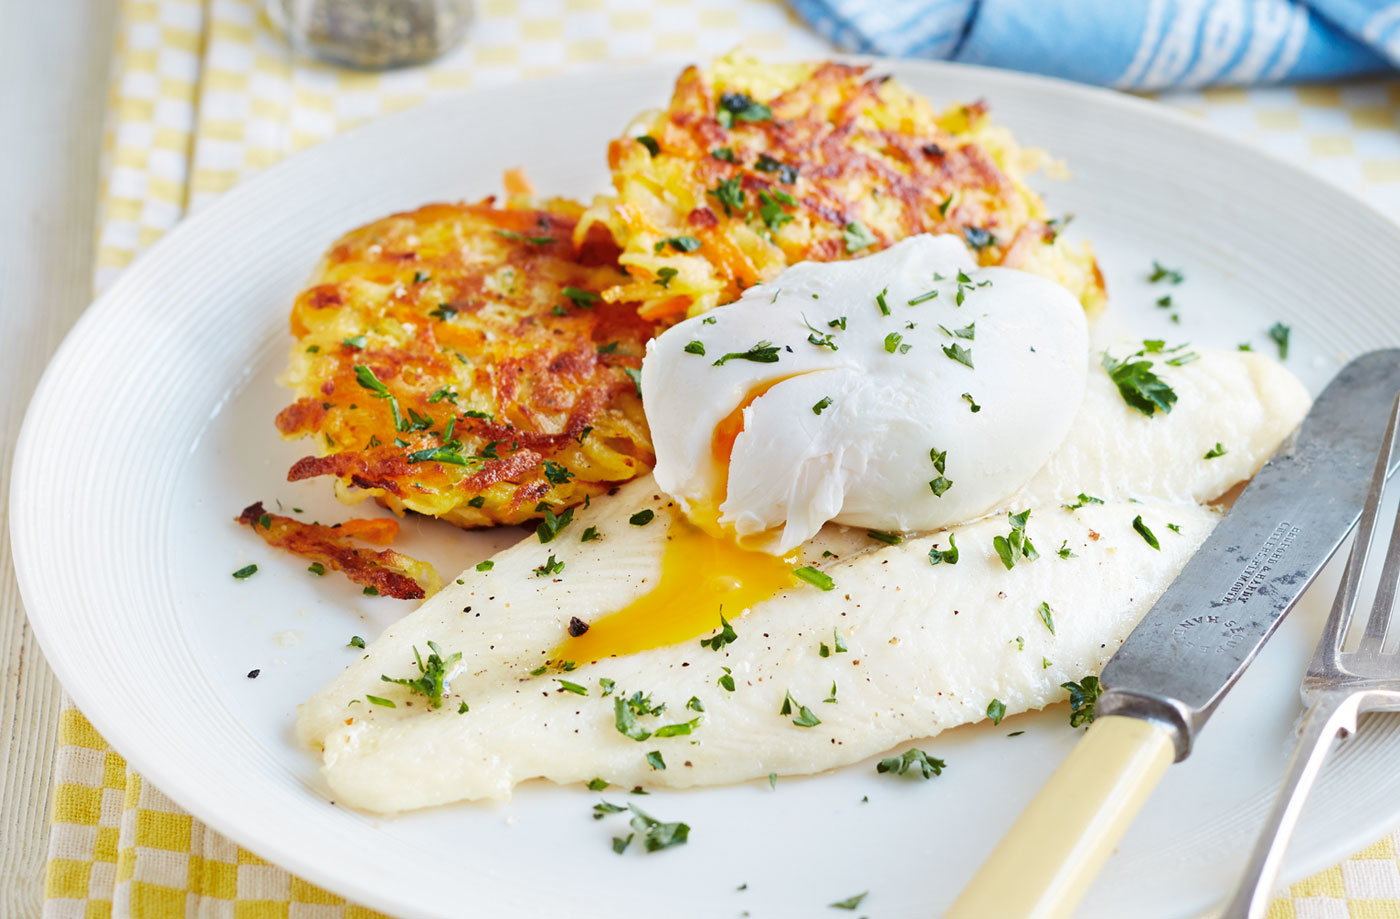 Root veg rösti with fish & egg recipe